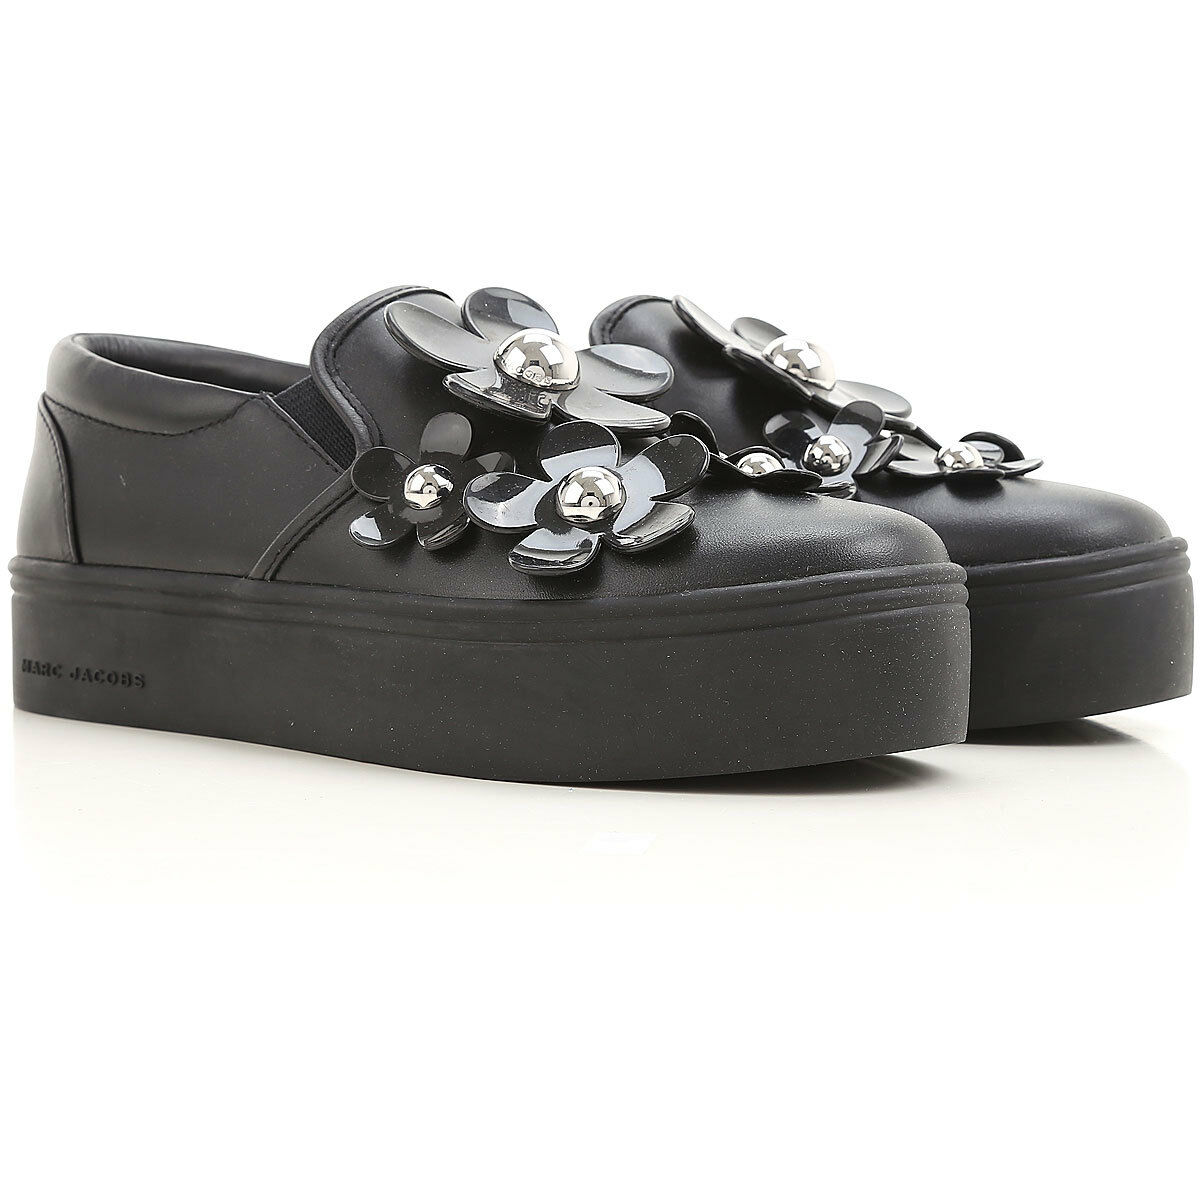 Marc Jacobs on Sneakers Daisy, Daisy slip- on Jacobs skate sneakers 33cf68